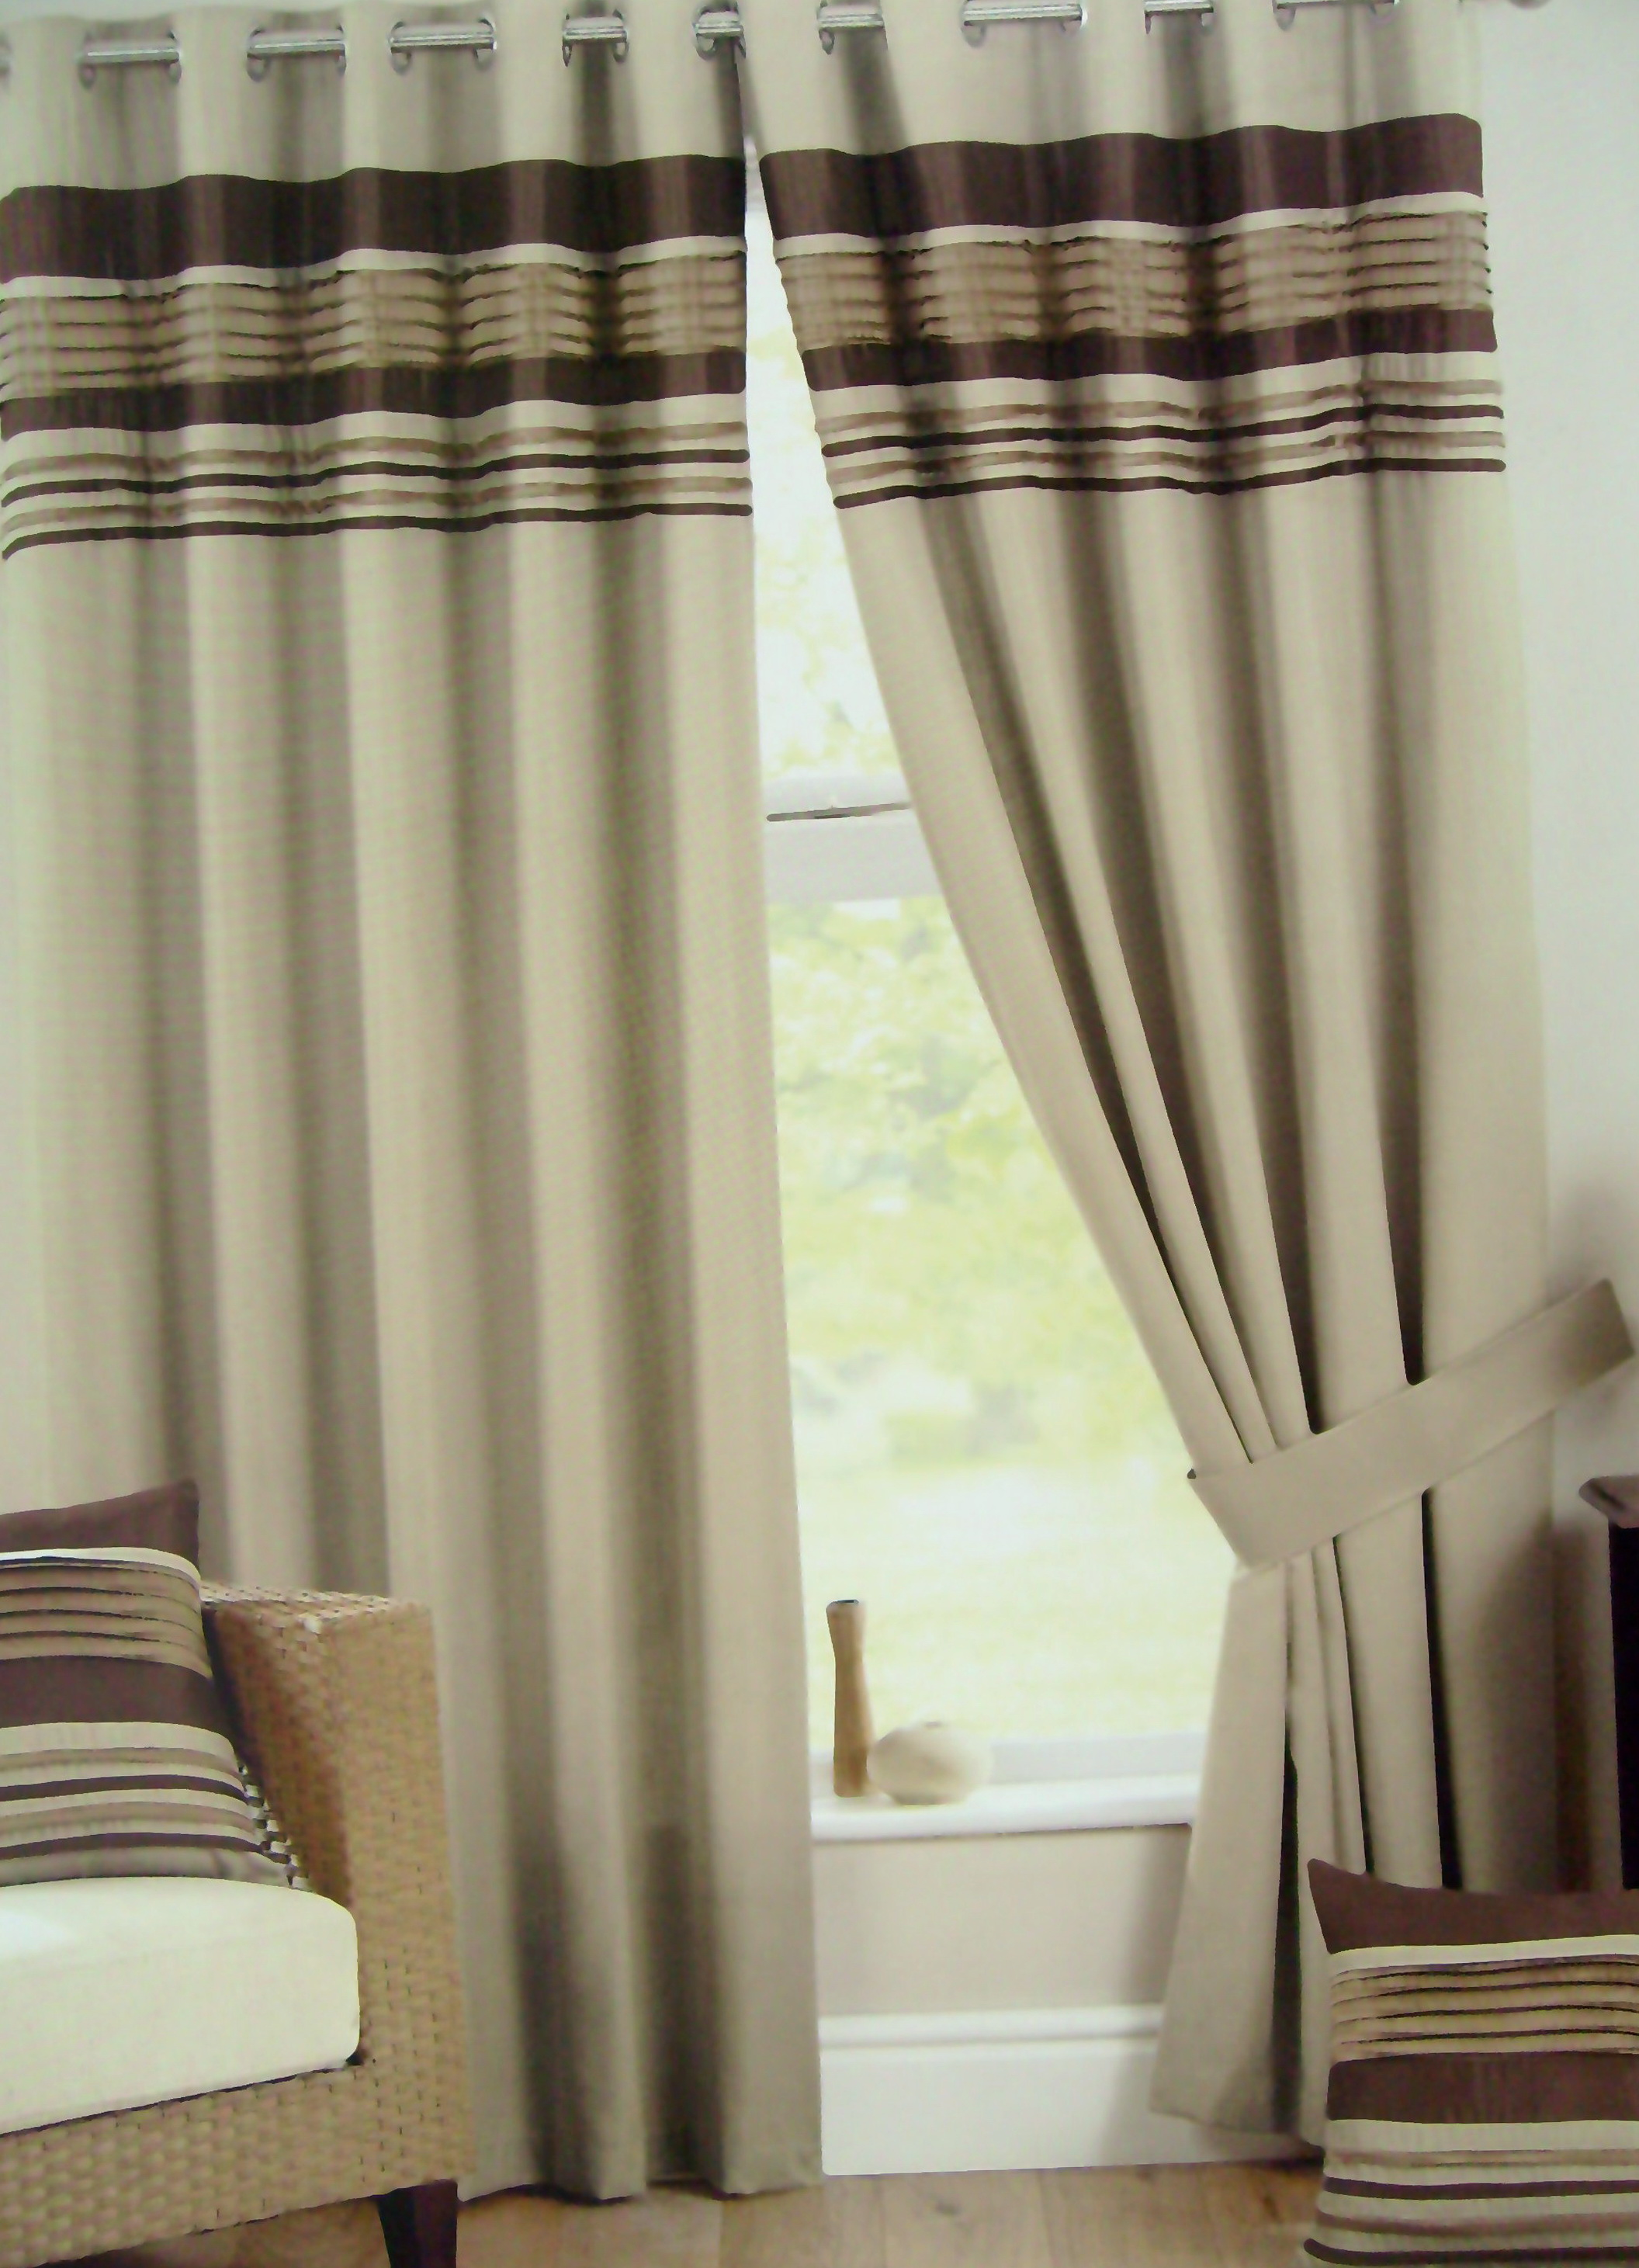 Free Shipping on many items across the worlds largest range of Sears Curtains, Drapes and Valances. Find the perfect Christmas gift ideas with eBay.